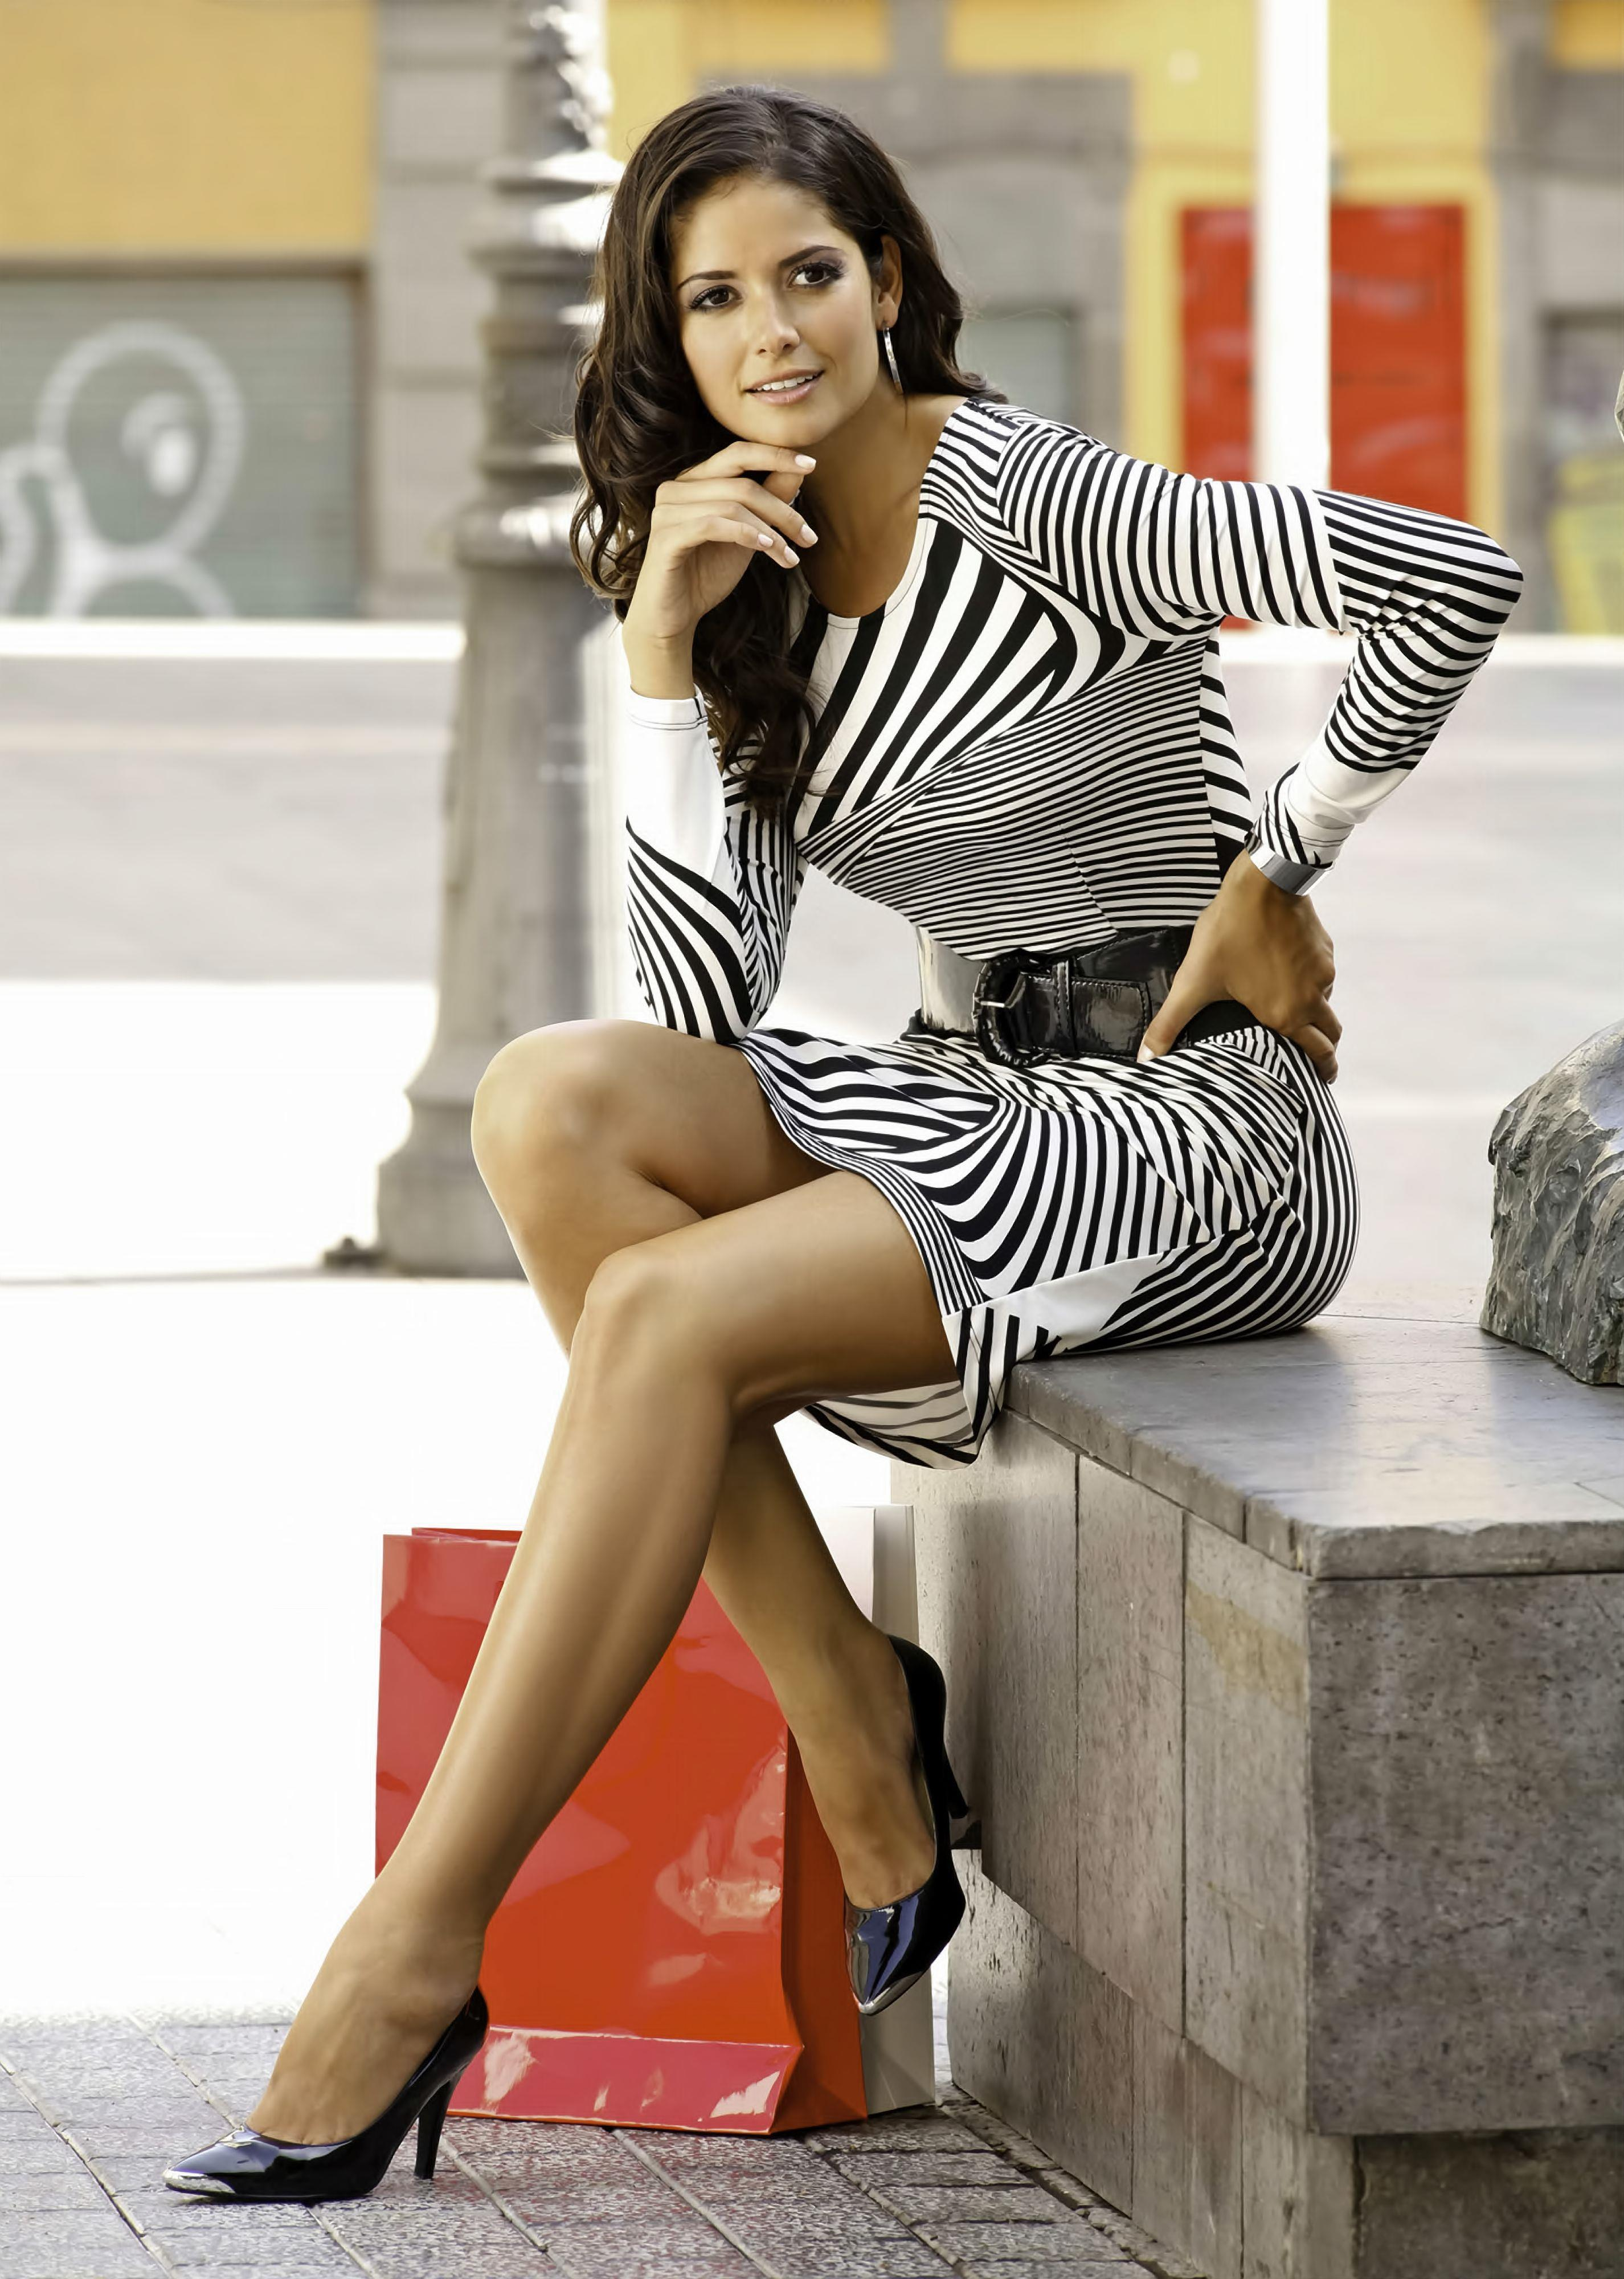 Carla Ossa Pictures. Hotness Rating = 9.66/10